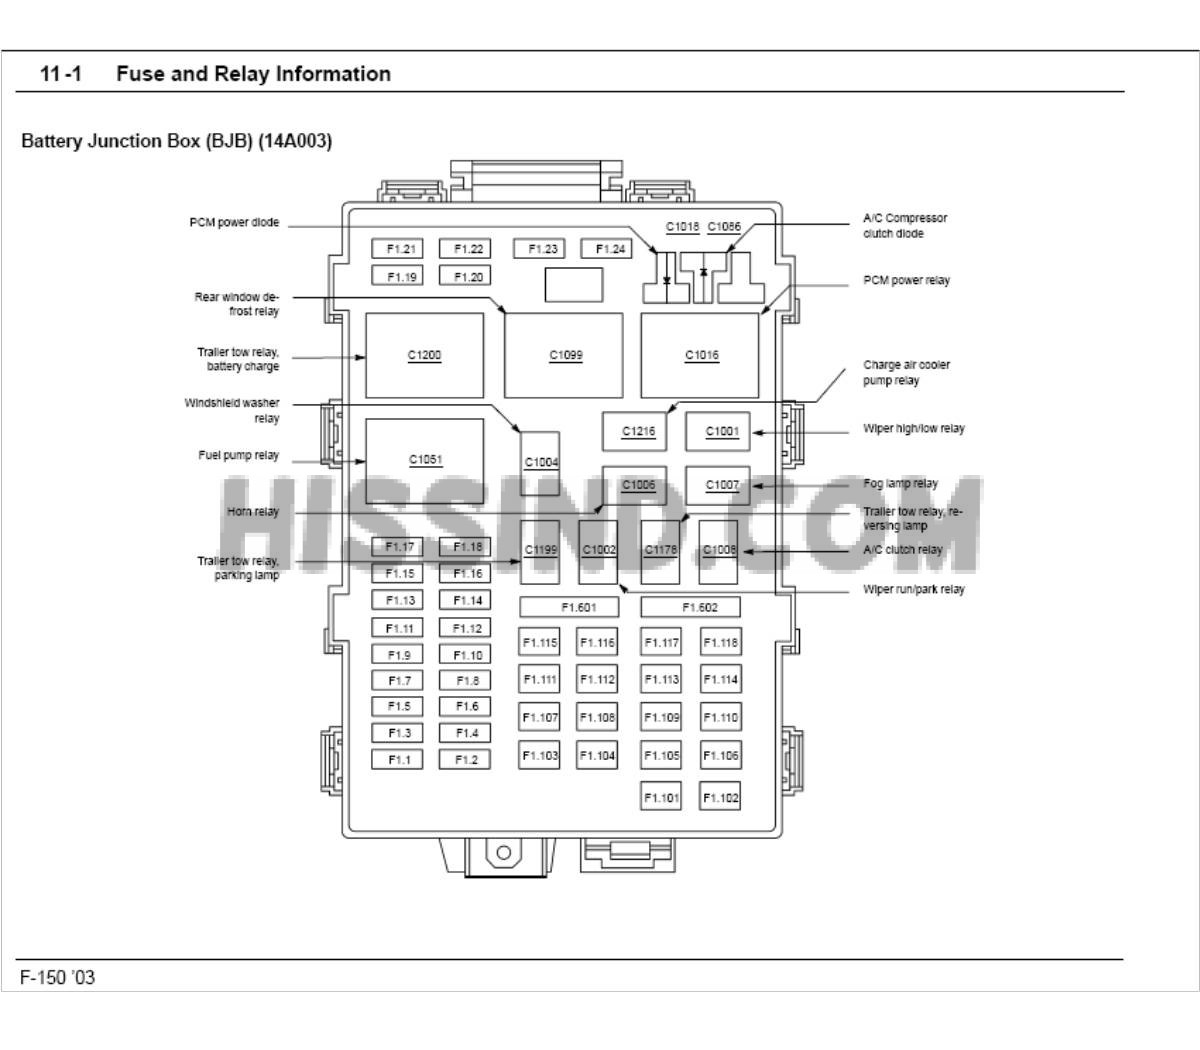 2000 ford f150 fuse box diagram engine bay 99 ford f150 fuse panel diagram 99 ford f150 fuse panel diagram 99 ford f150 fuse panel diagram 99 ford f150 fuse panel diagram